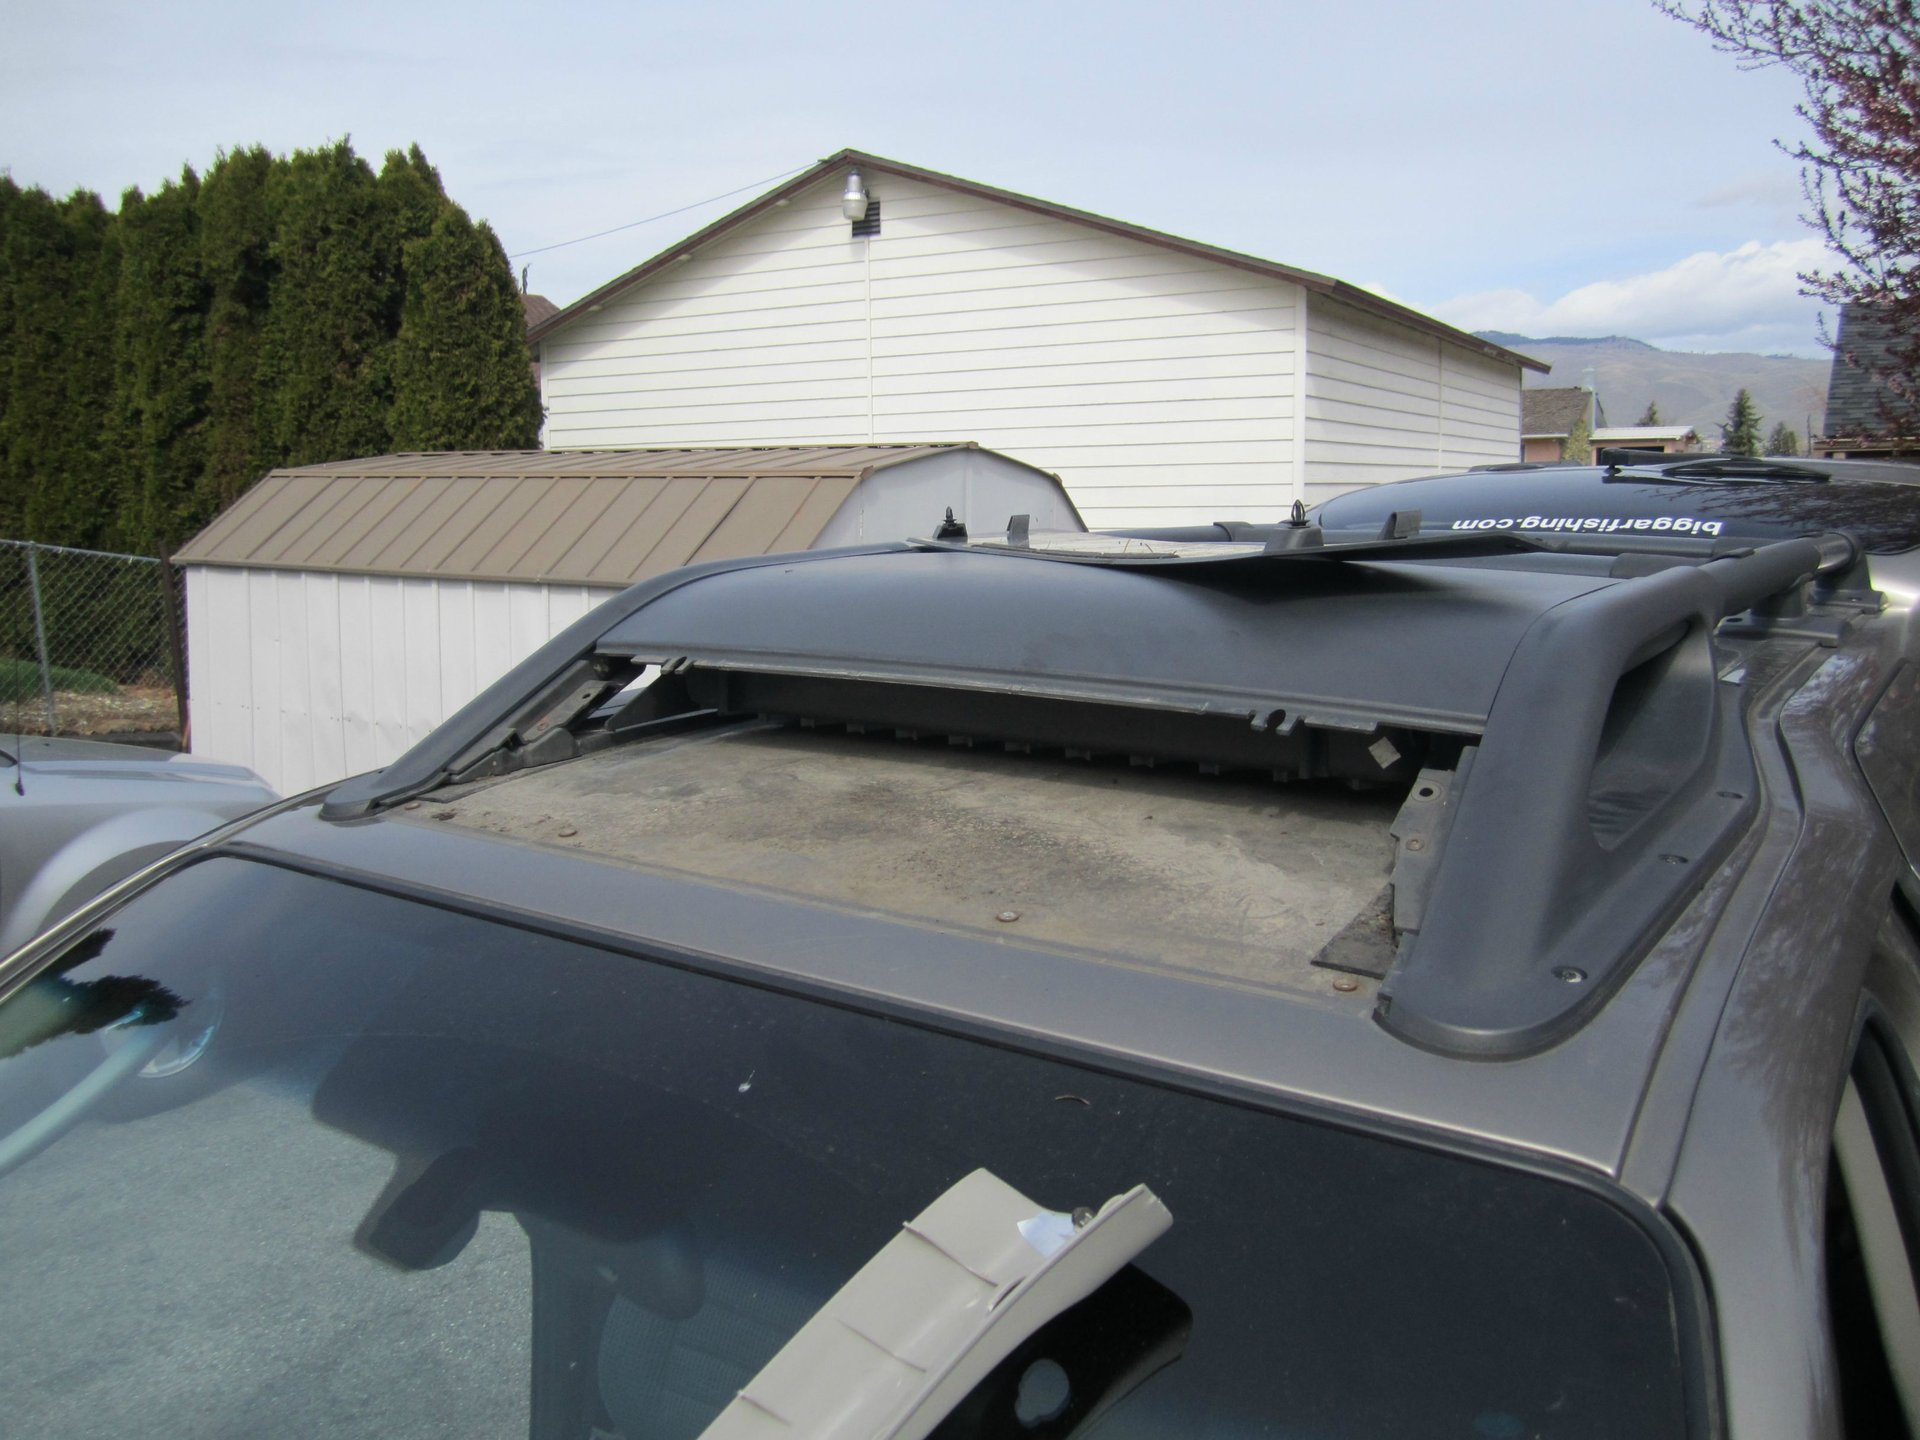 How-to: LED Roof Lights - A Money Saving Install | Second Generation on